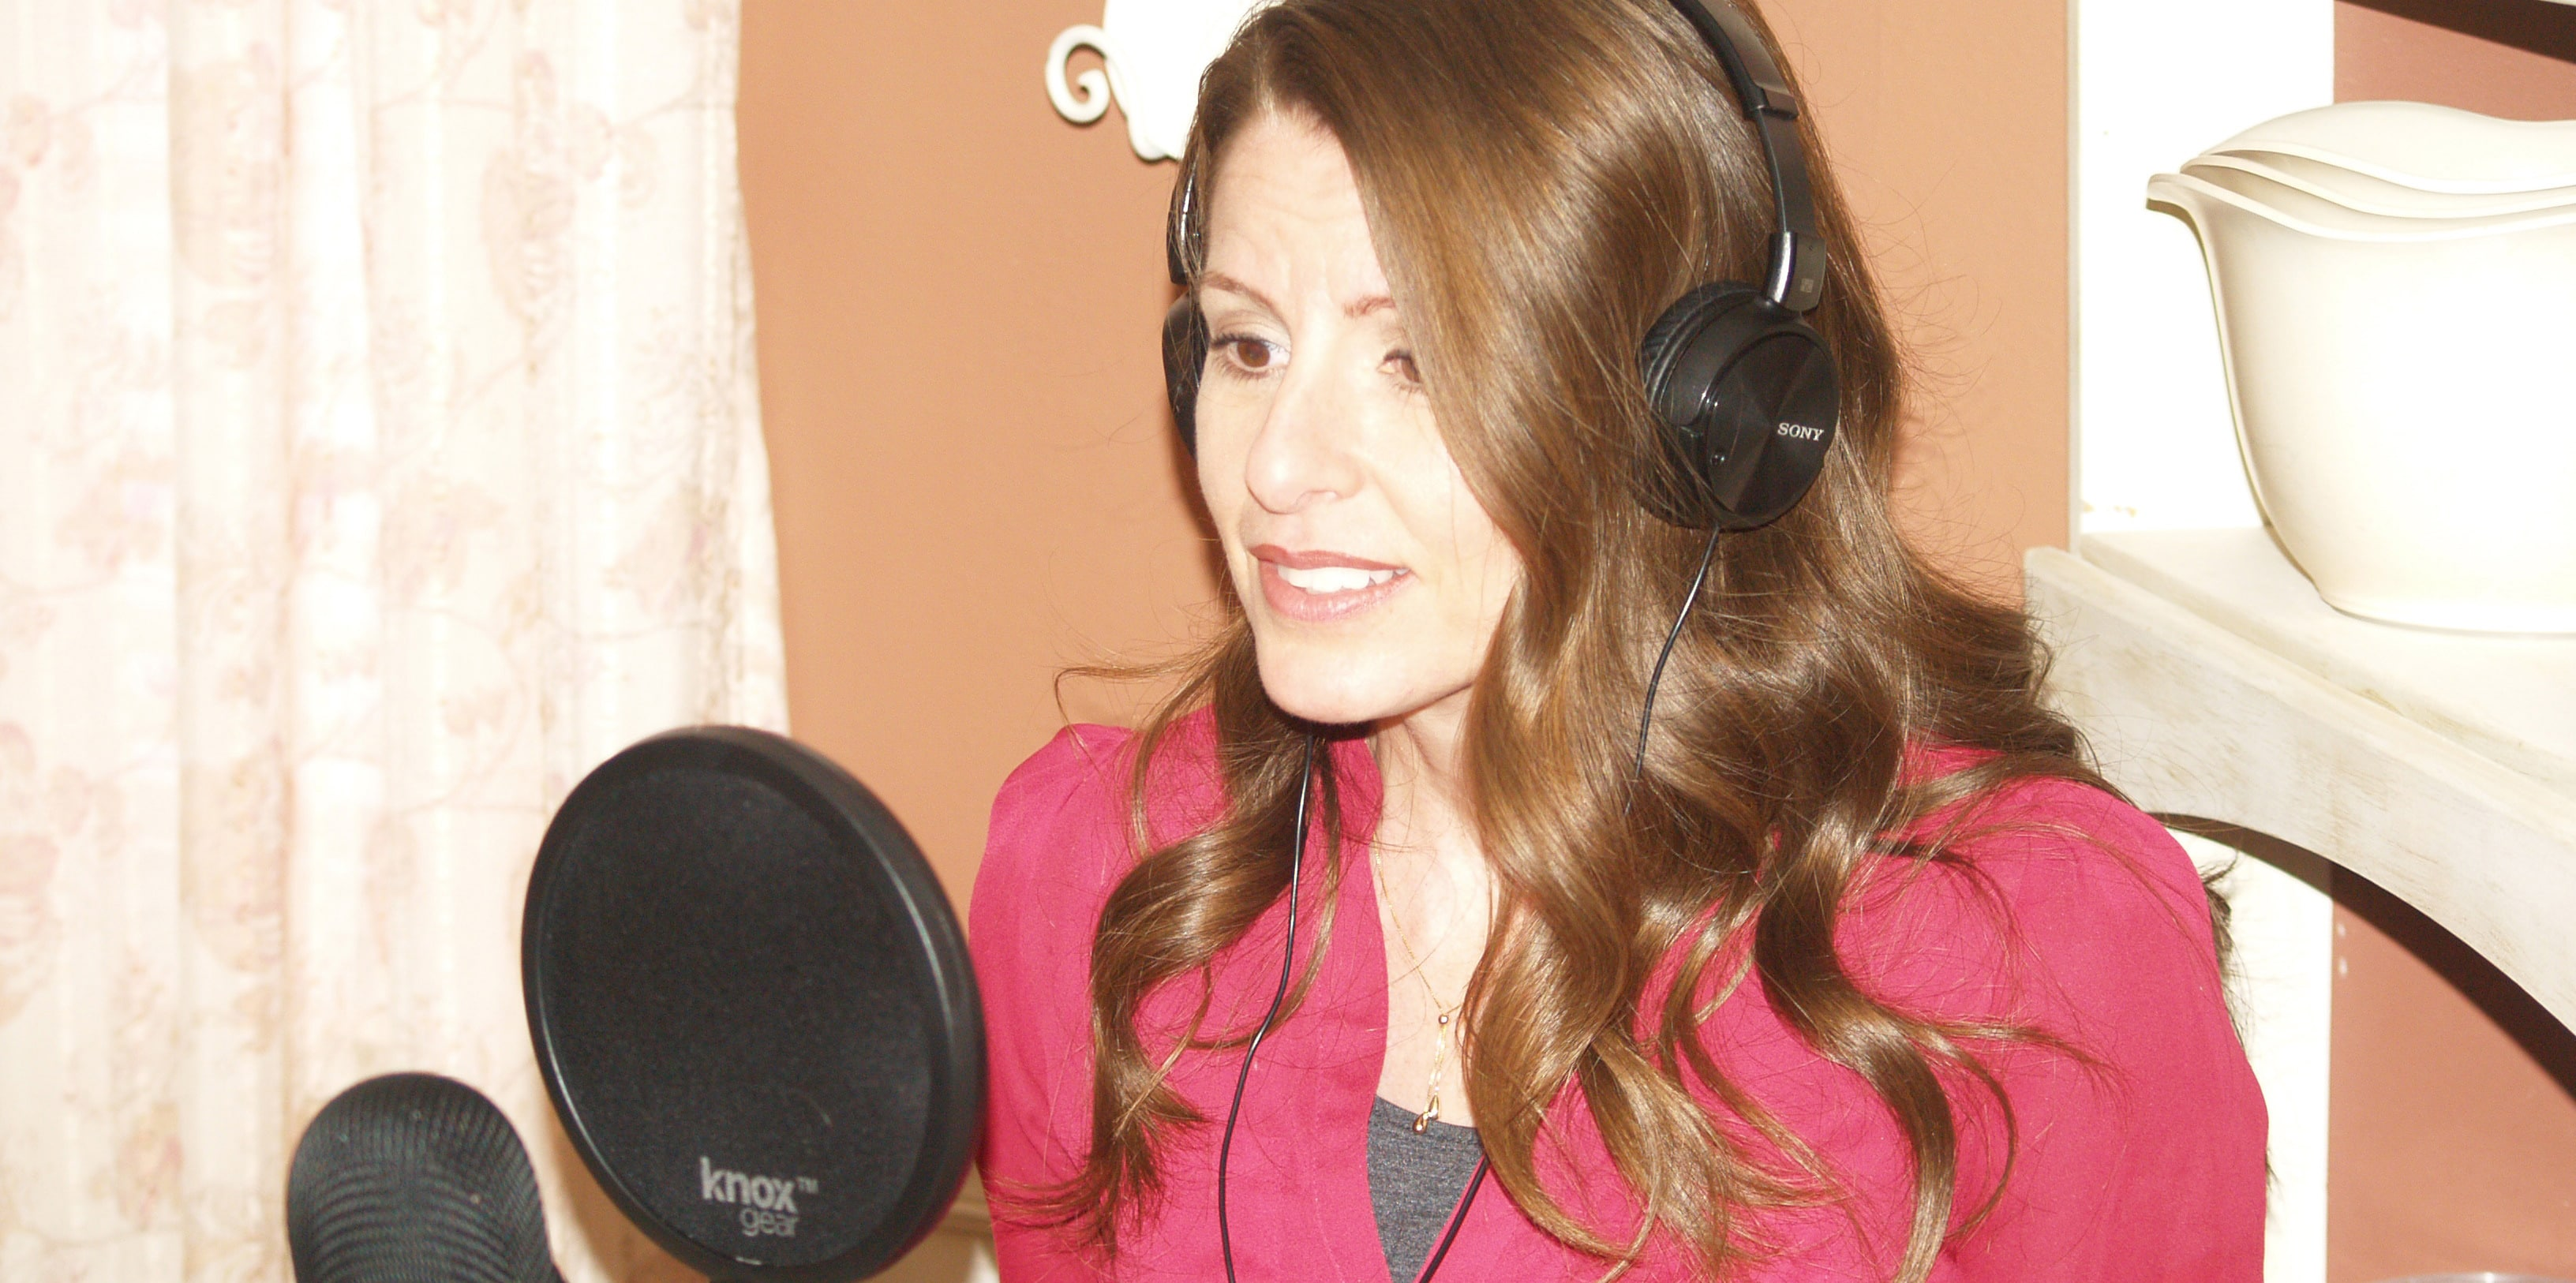 Woman with headphones talking into microphone